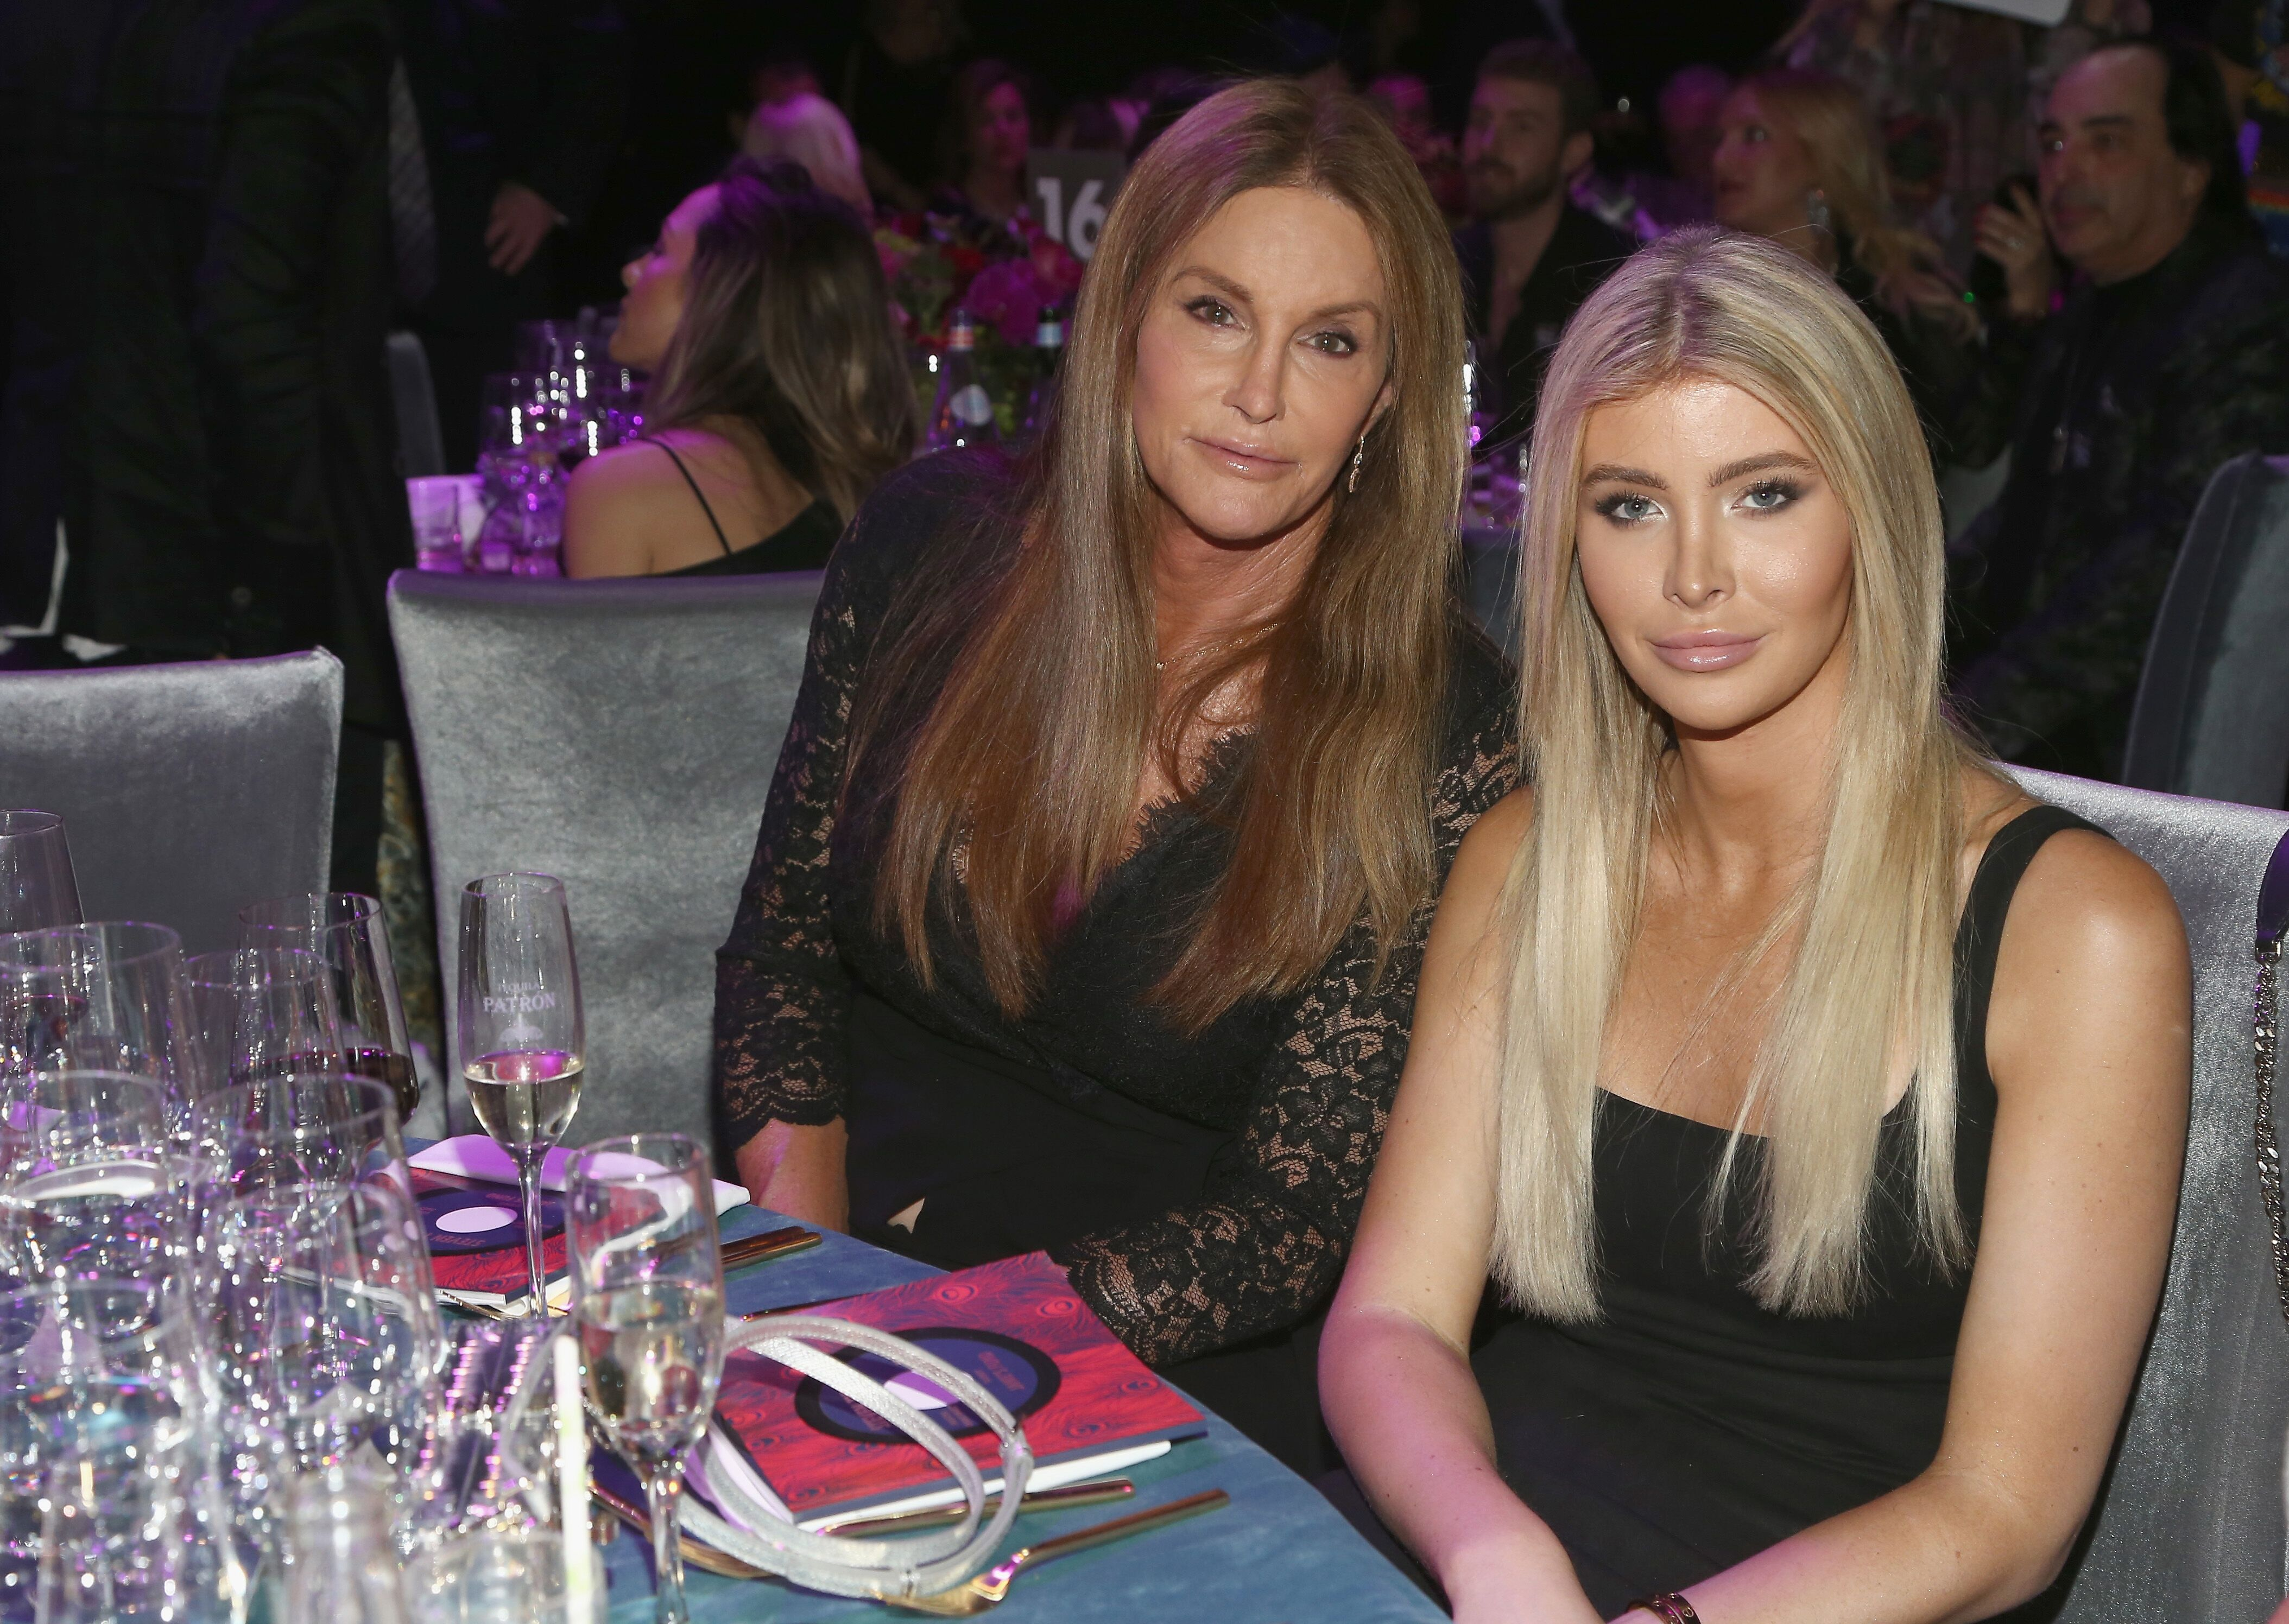 Caitlyn Jenner (L) and Sophia Hutchins at Steven Tyler and Live Nation presents Inaugural Janie's Fund Gala & GRAMMY Viewing Party at Red Studios in Los Angeles, California | Photo: Getty Images